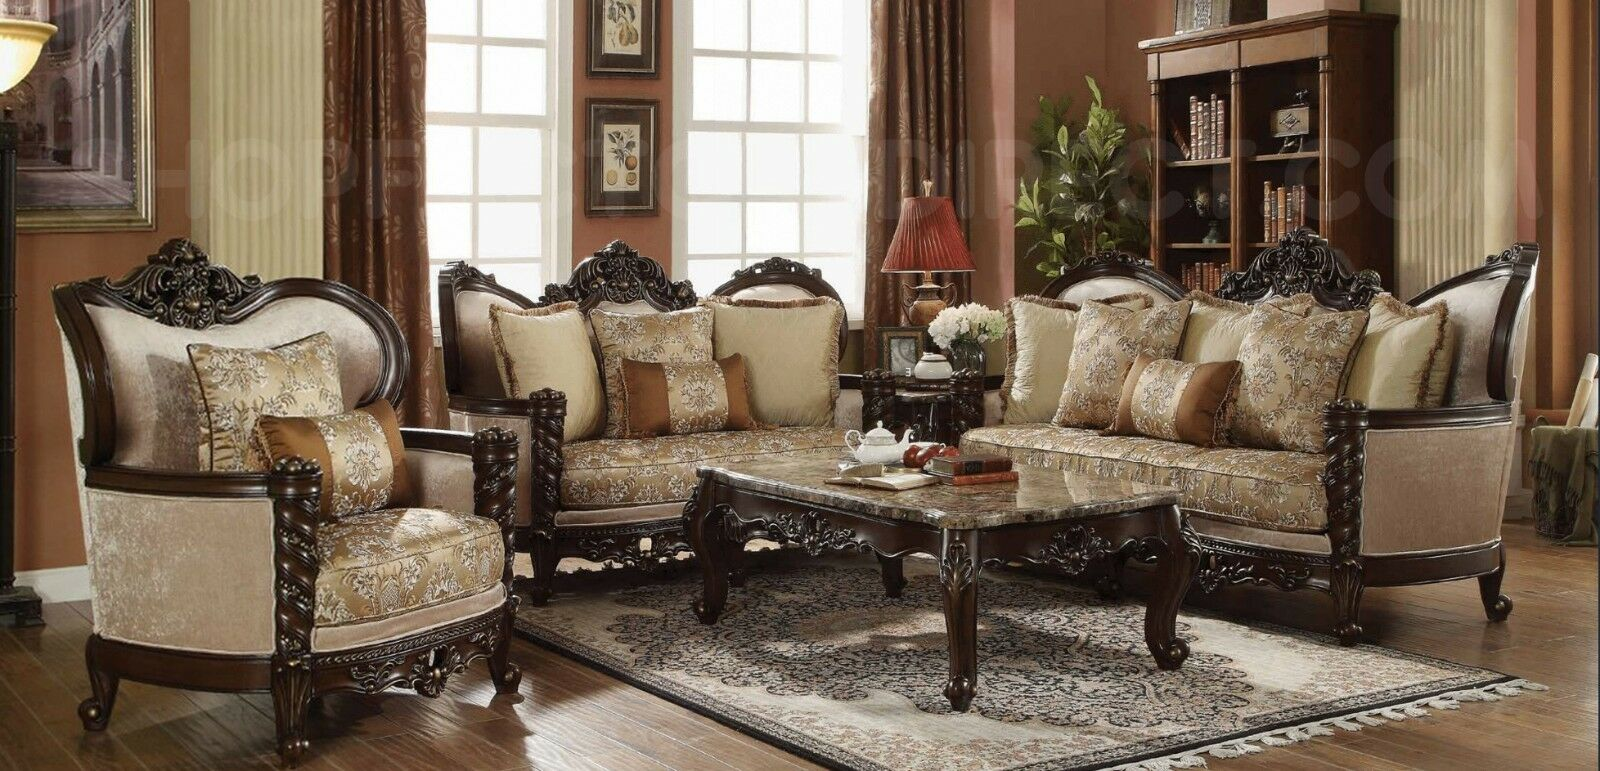 Details about Traditional Victorian Luxury Sofa & Love Seat Formal Living  Room Furniture Set